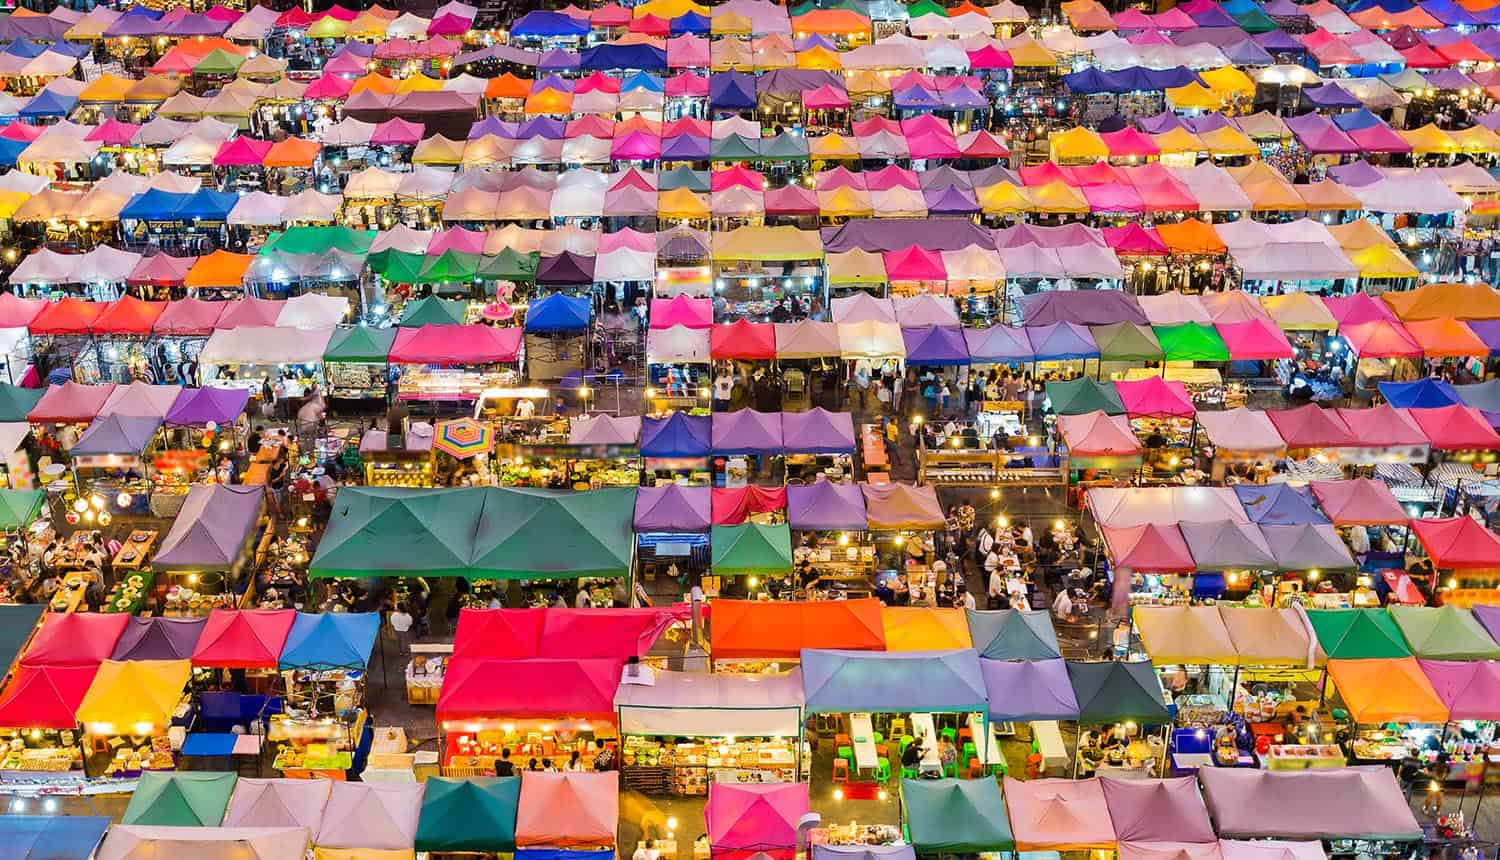 Top view multiple colour night market showing personal data marketplace might not be the best solution for data privacy